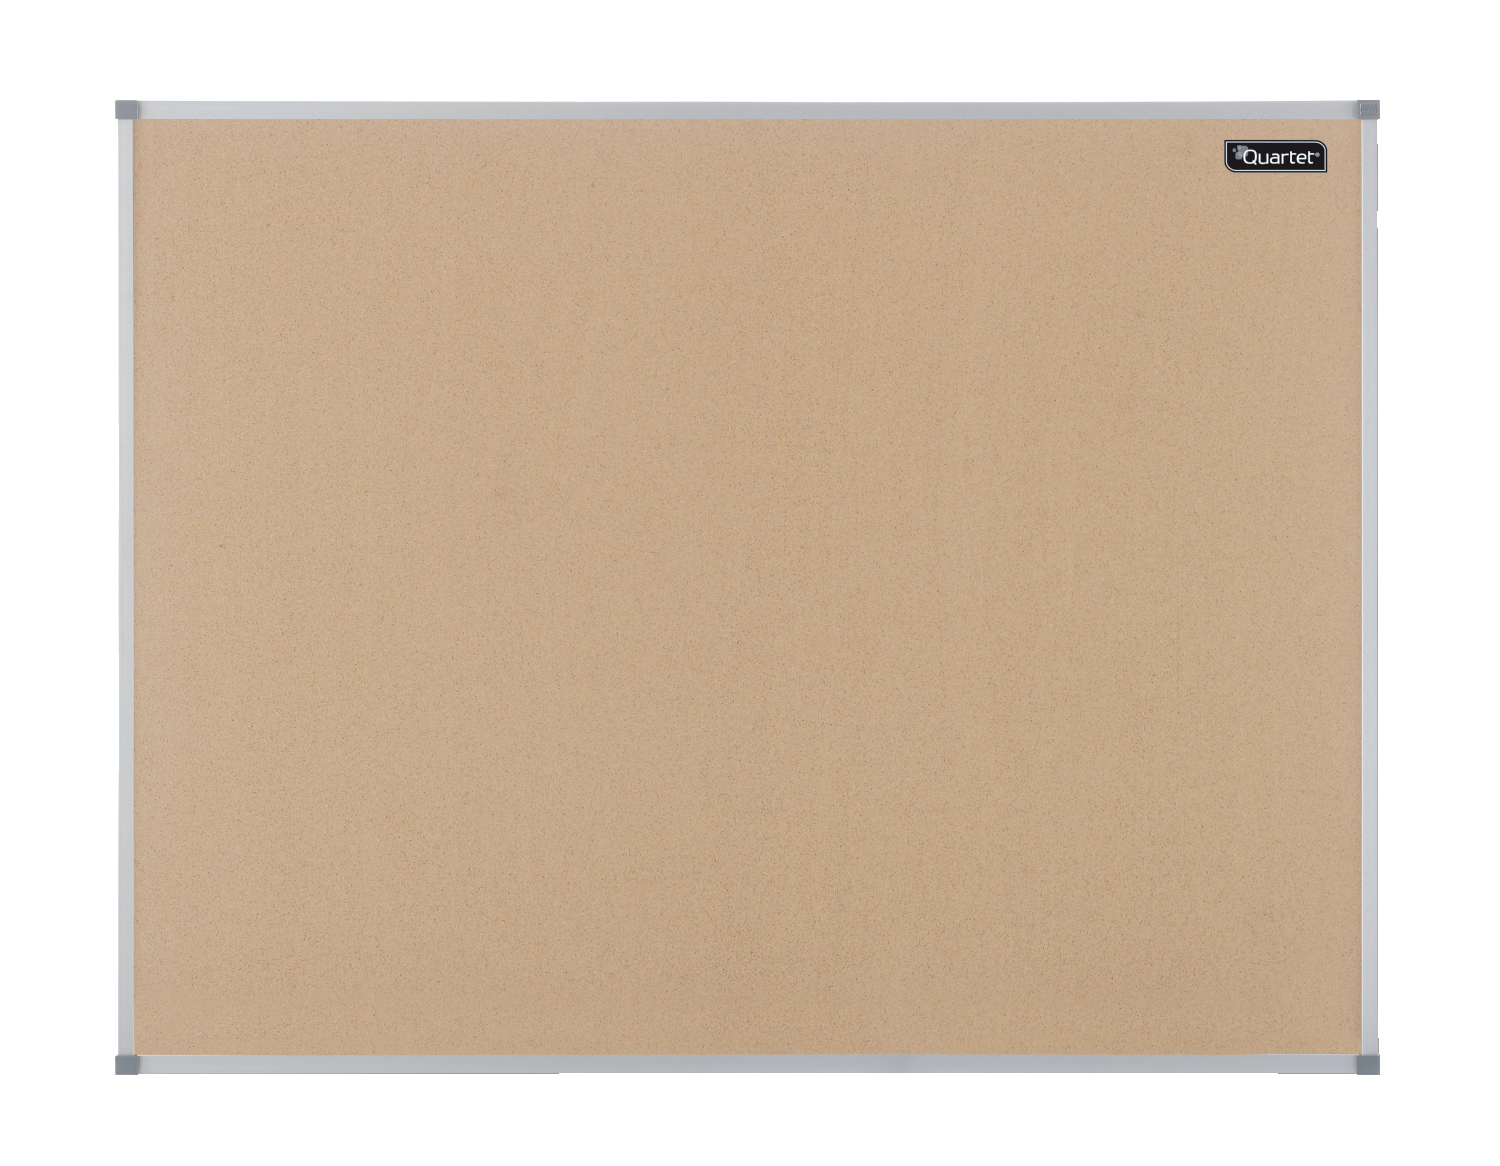 Quartet Cork Board Aluminium Frame 1800x1200mm